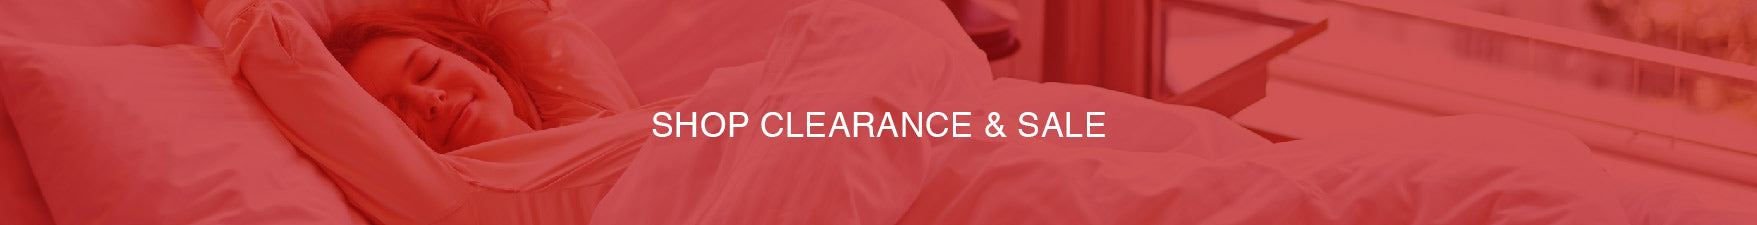 Shop Clearance and Sale Items